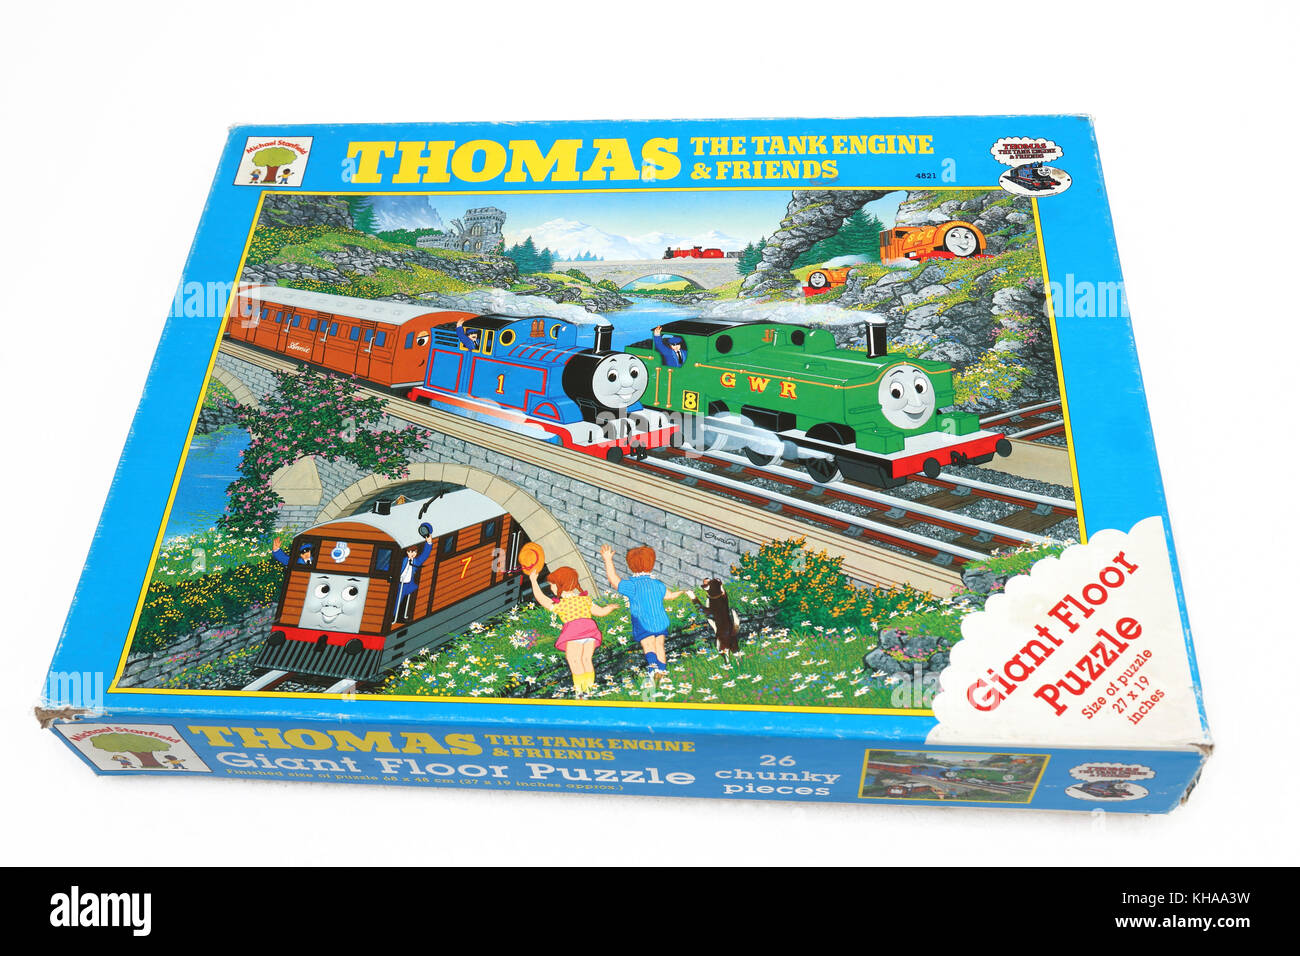 Thomas The Tank Engine And Friends Giant Floor Jigsaw